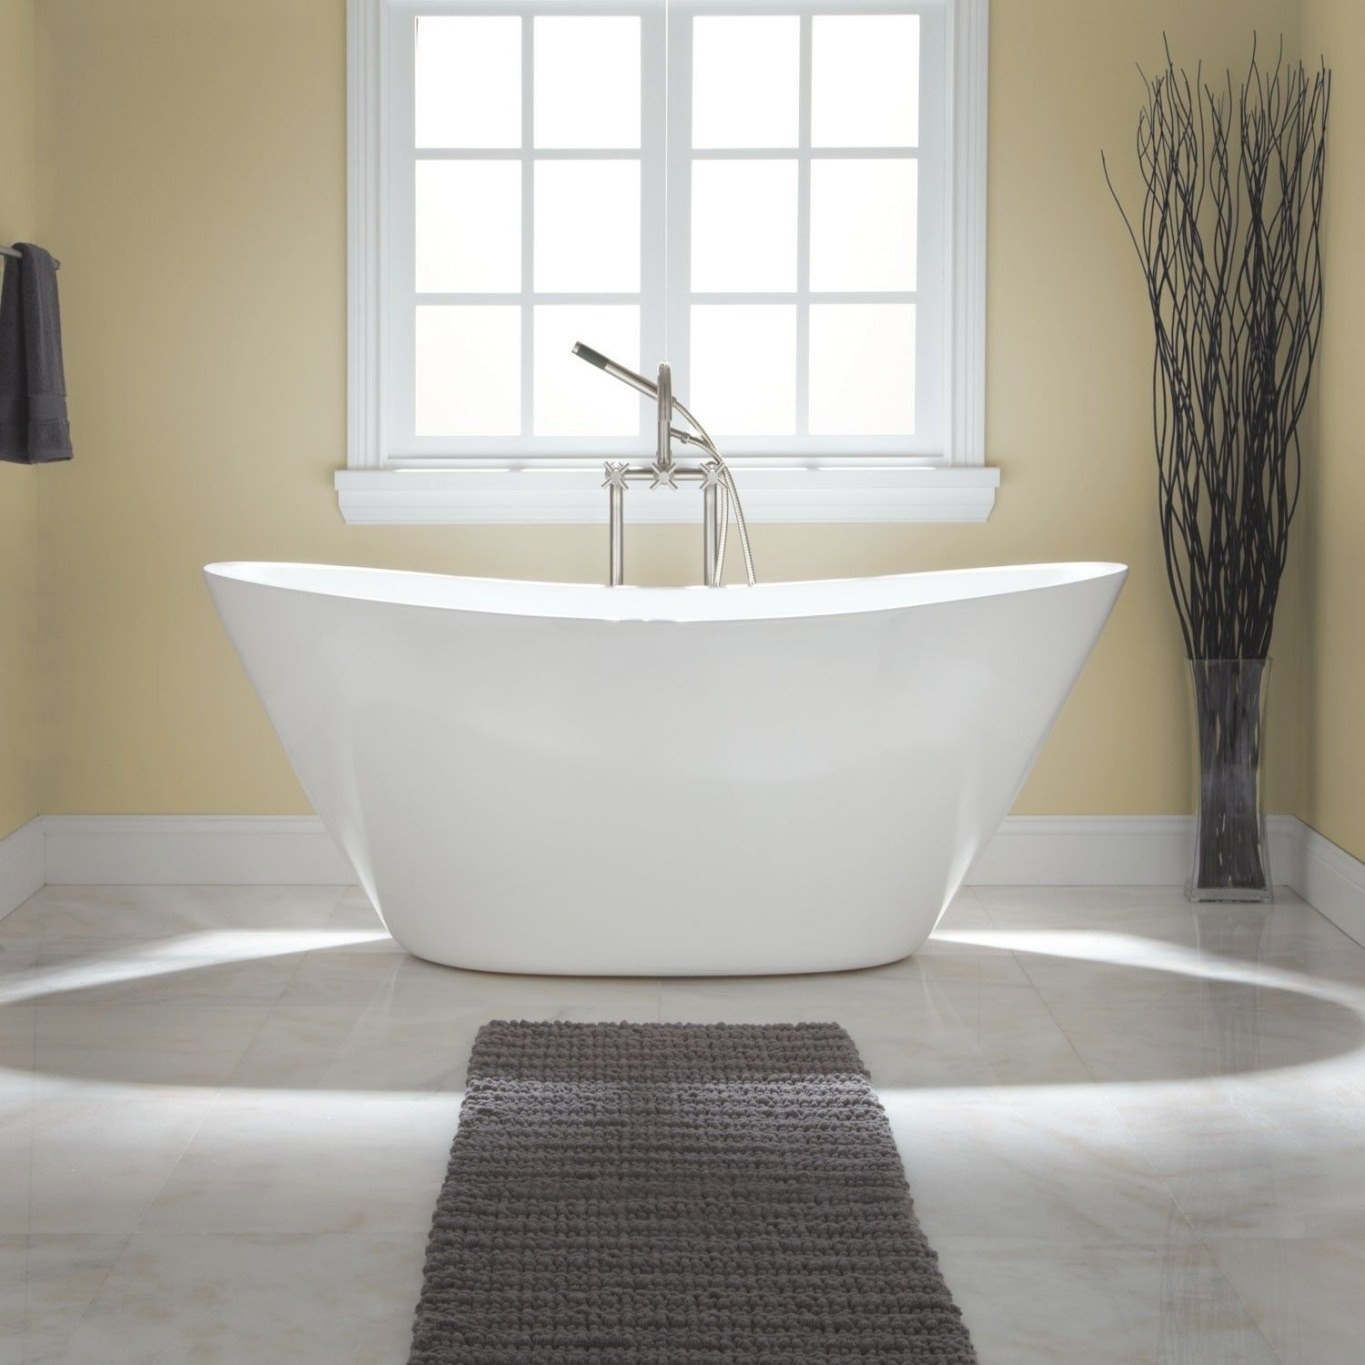 Treece Acrylic Tub - Freestanding Tubs - Bathtubs with regard to Free Standing Tub Shower